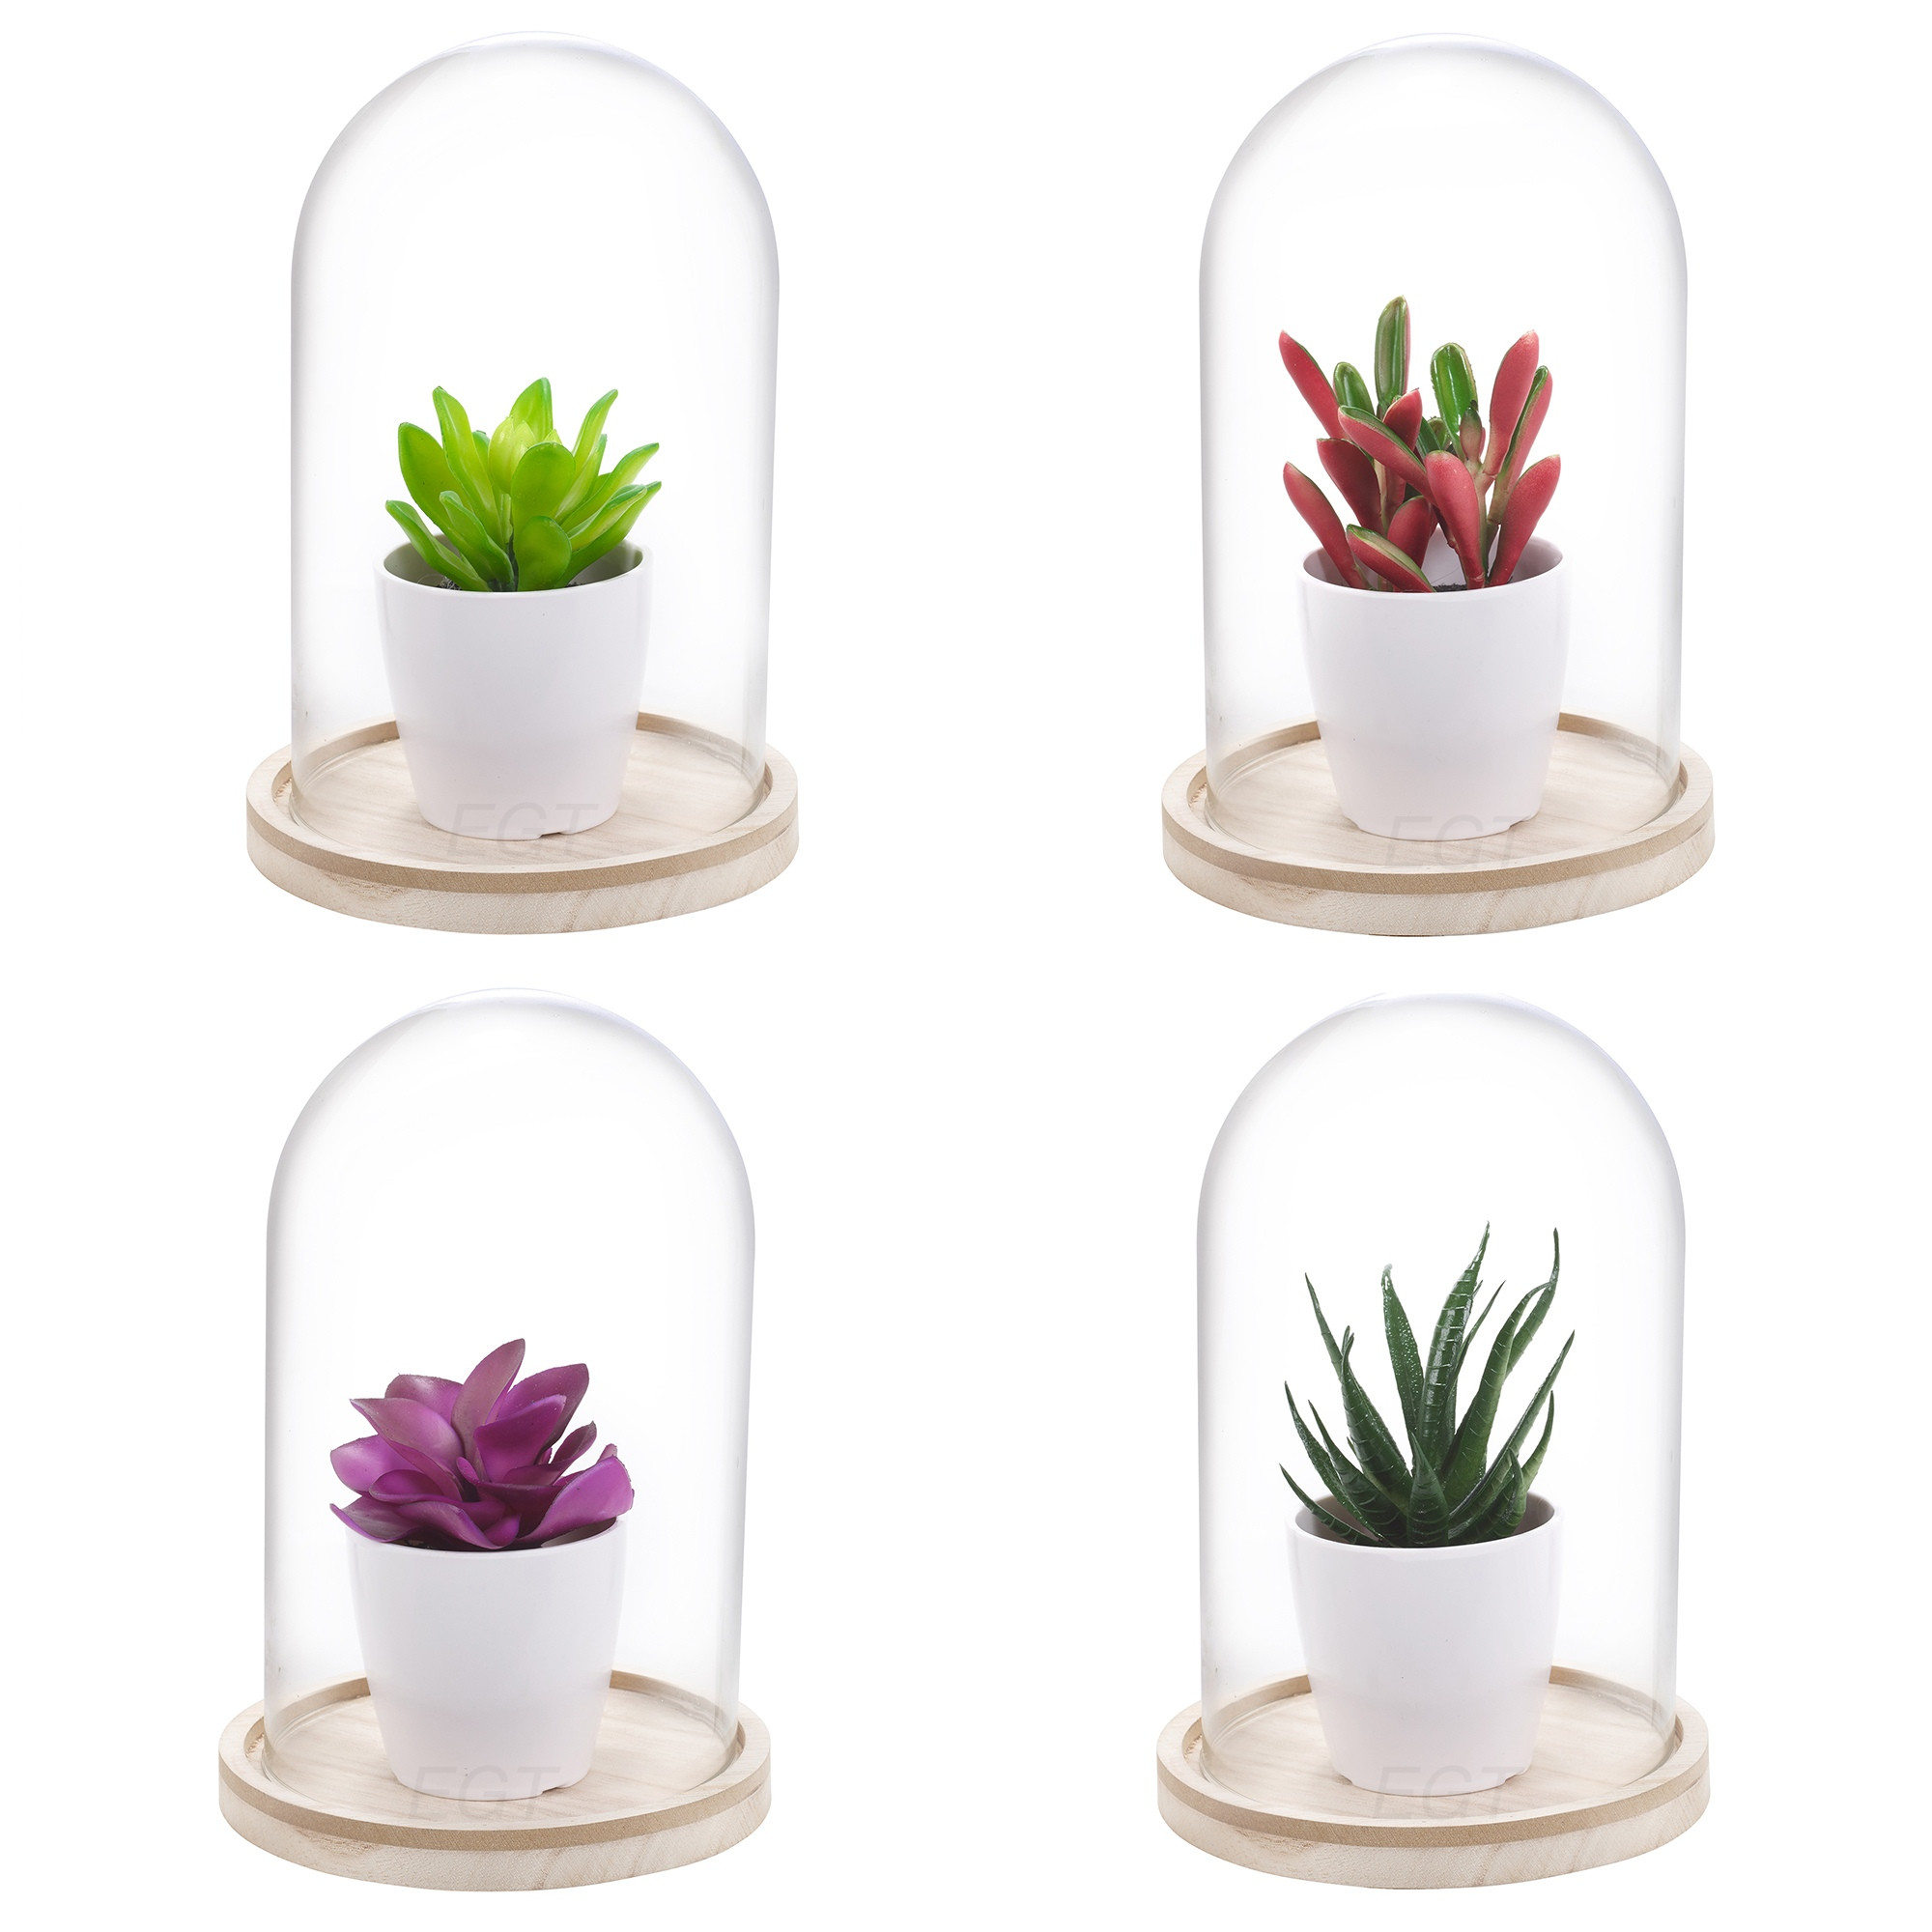 Artificial Plant In Glass Dome Bell Jar Display Decorative